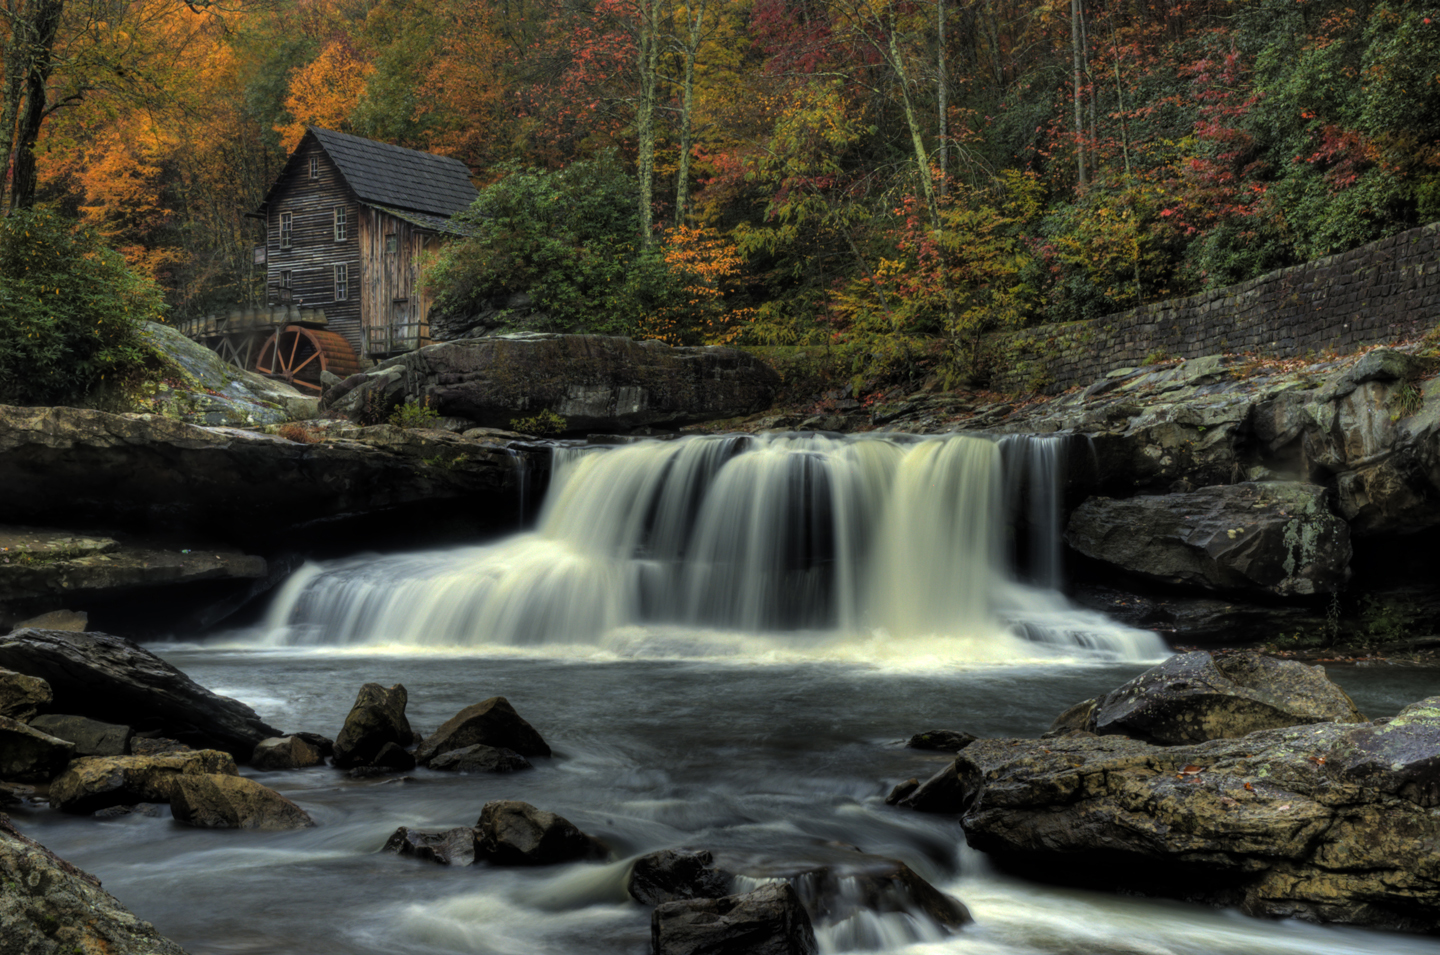 Grist Mill and Waterfall